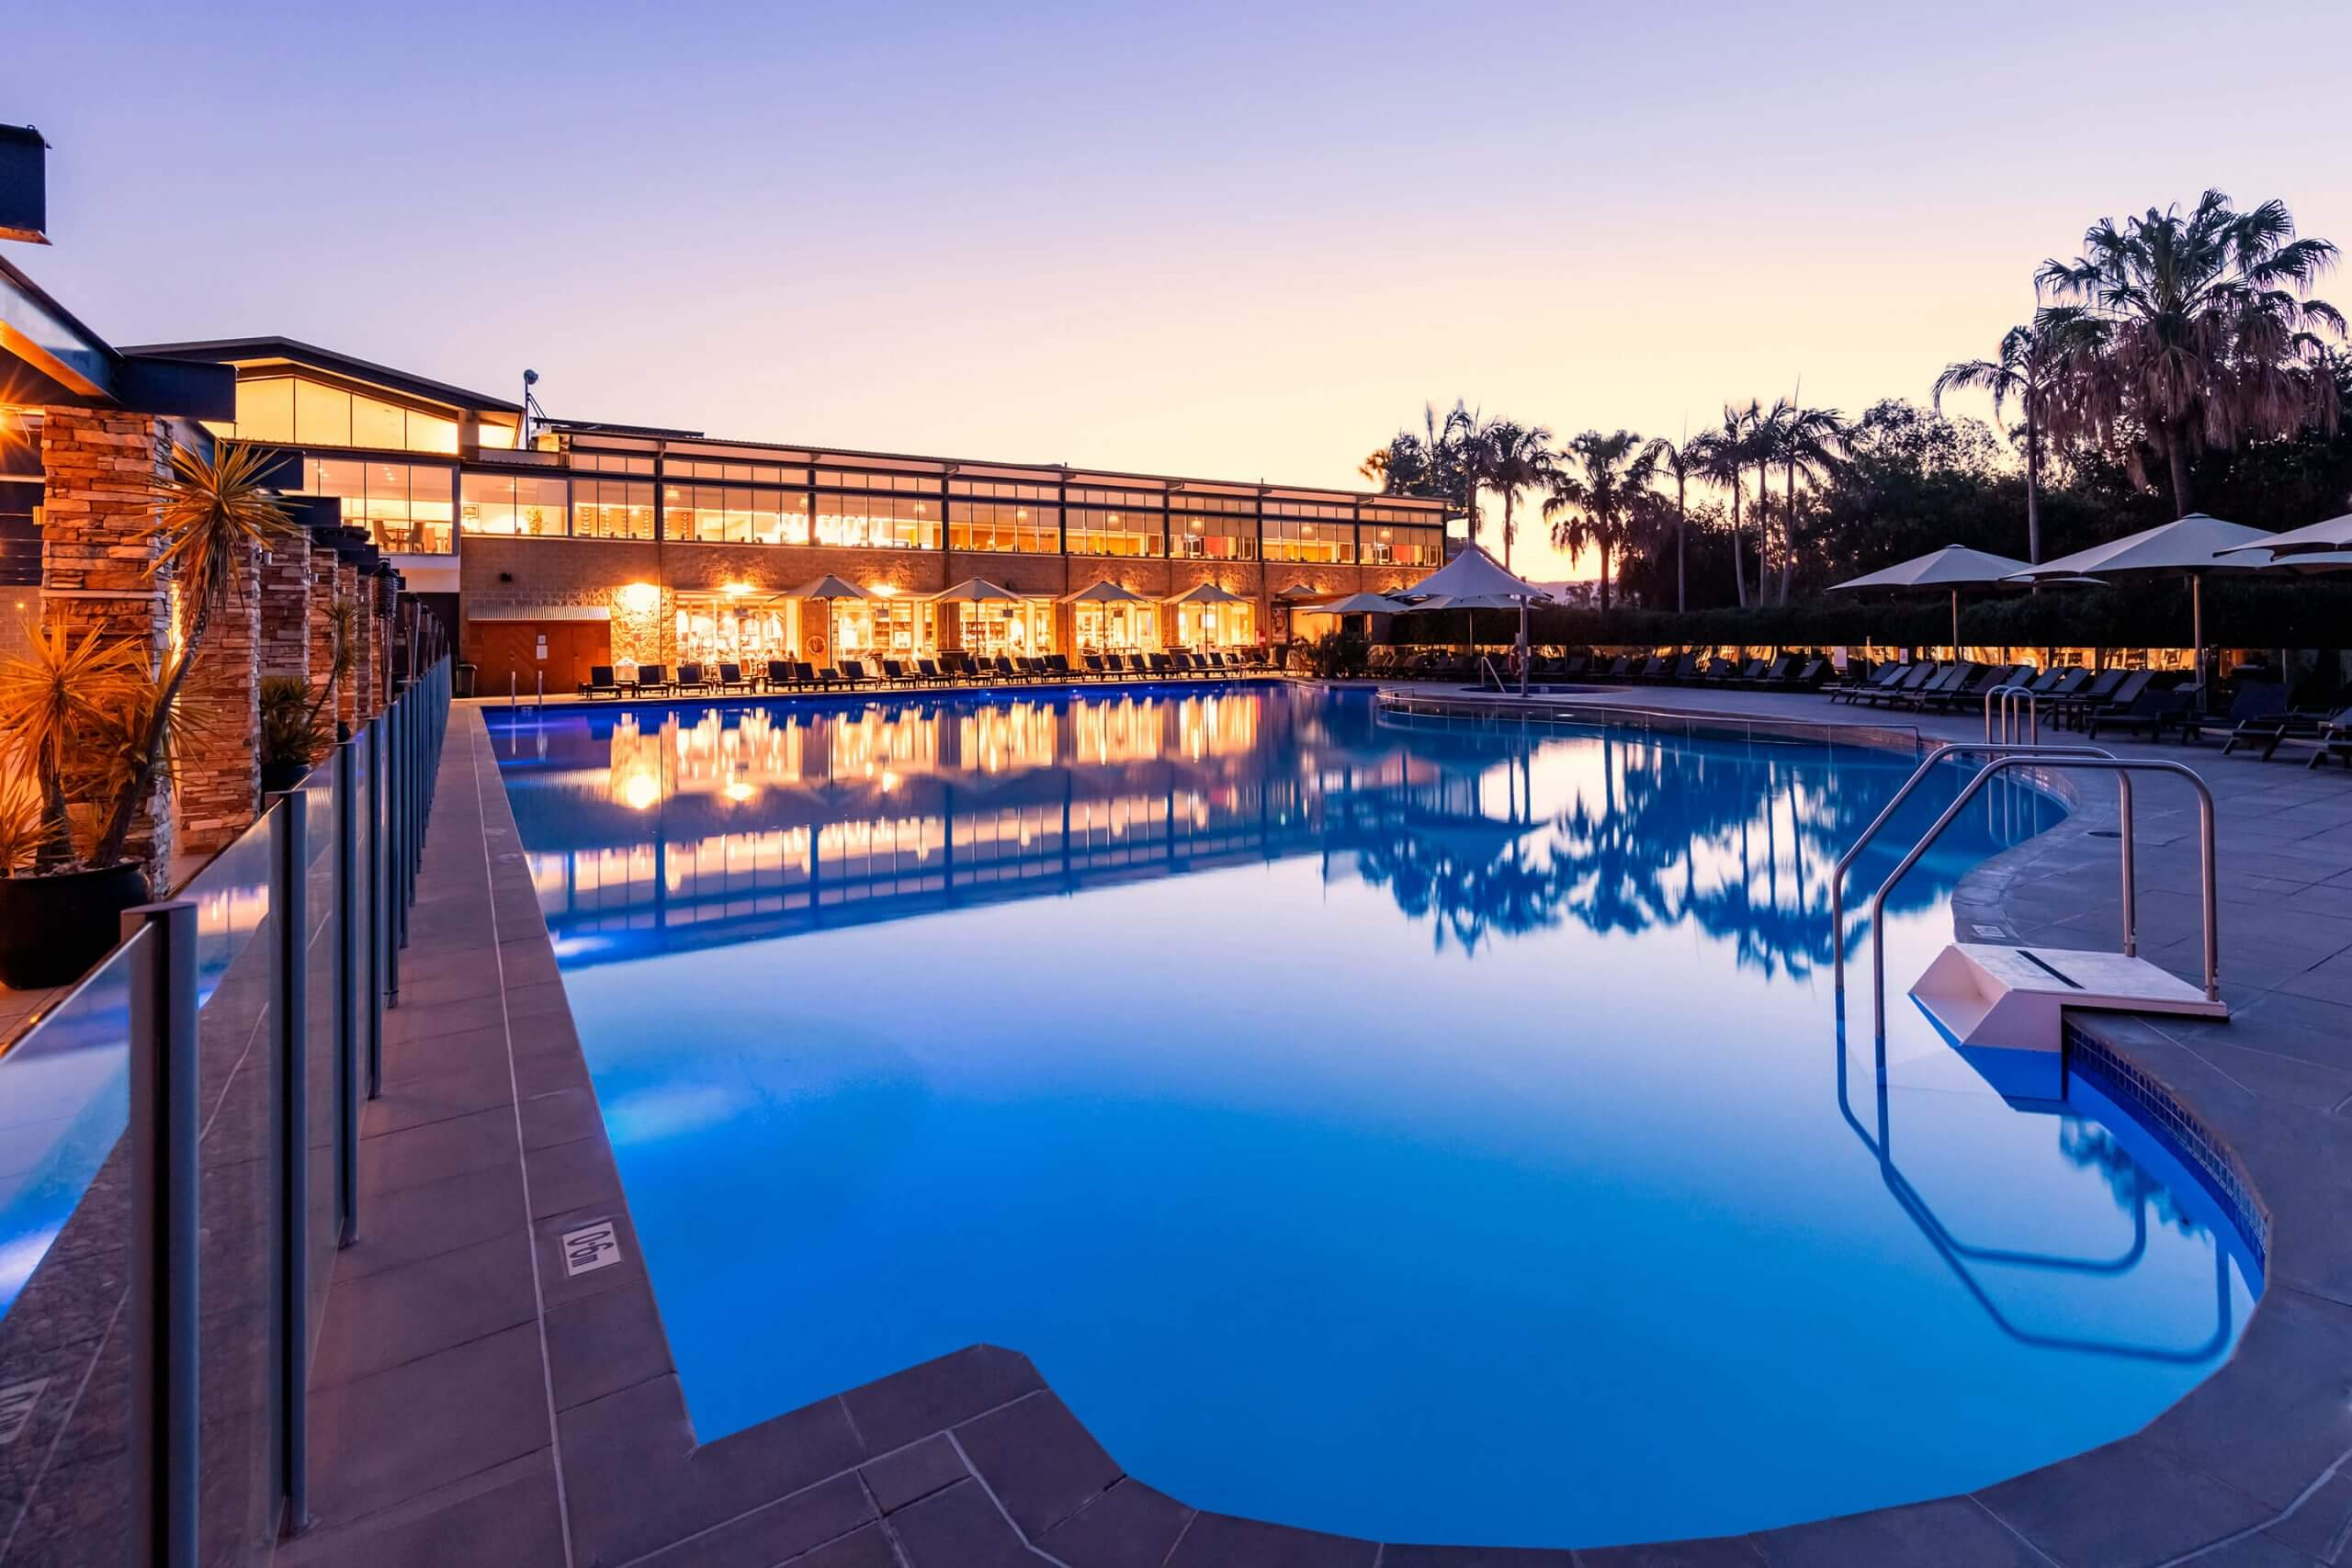 Crowne Plaza Hunter Valley swimming pool at night